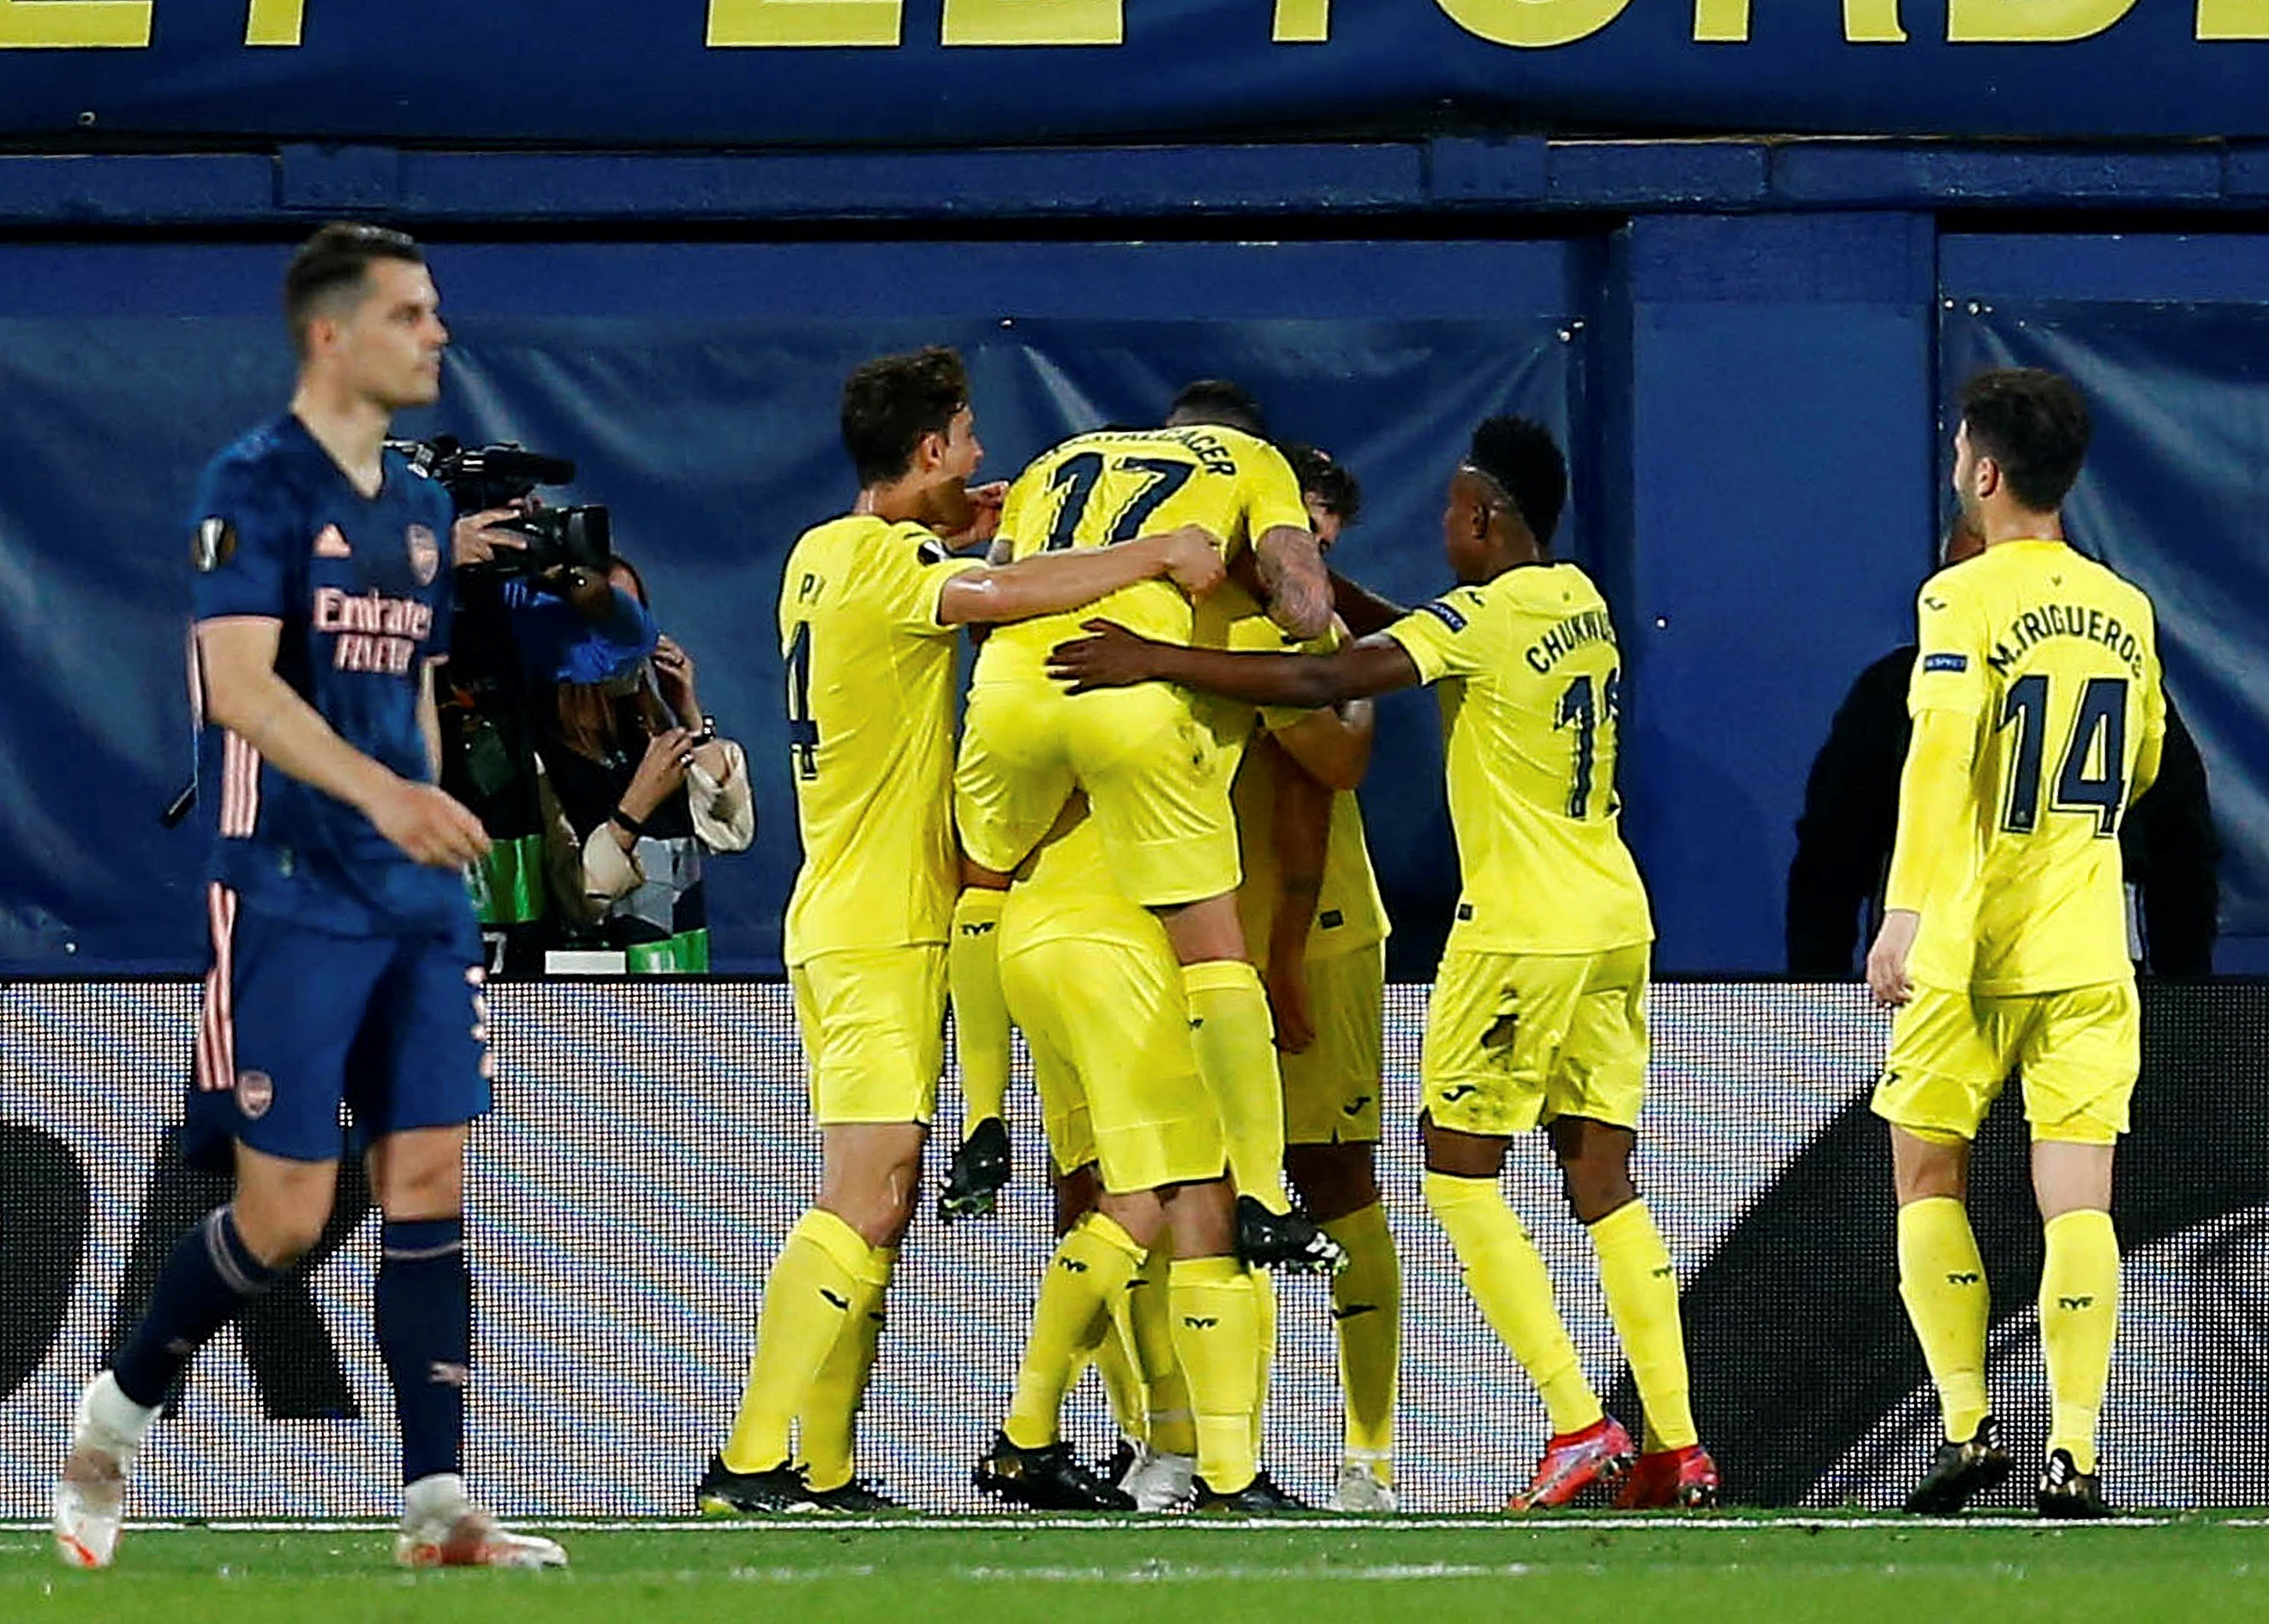 Villarreal, finalista de la Europa League